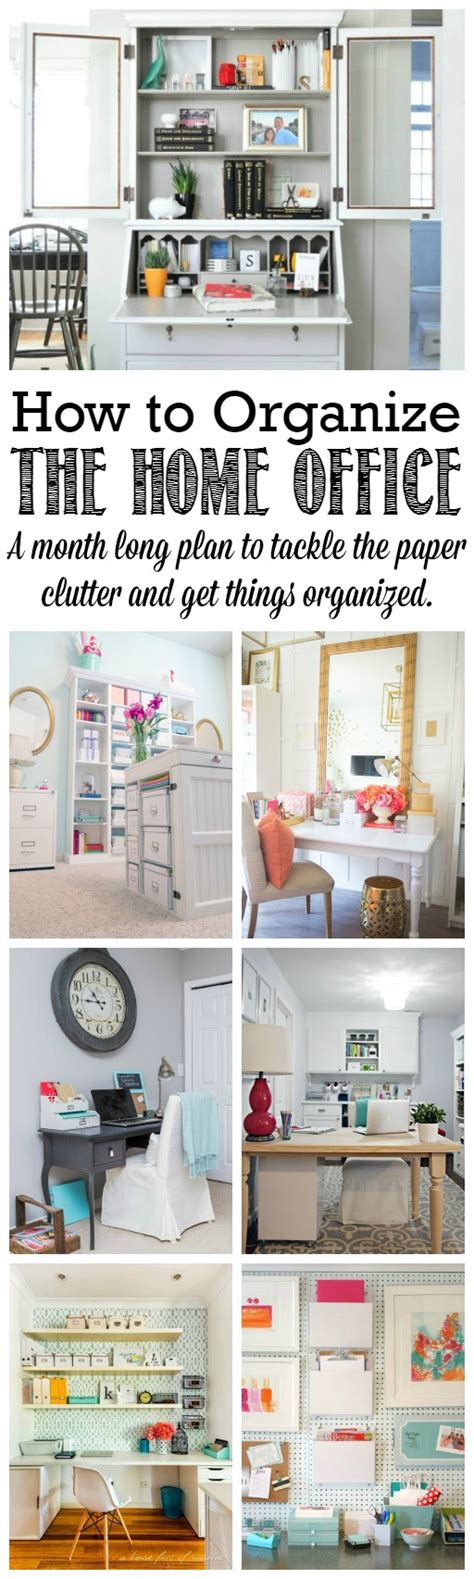 how to organize home office how to organize the home office hod march printables